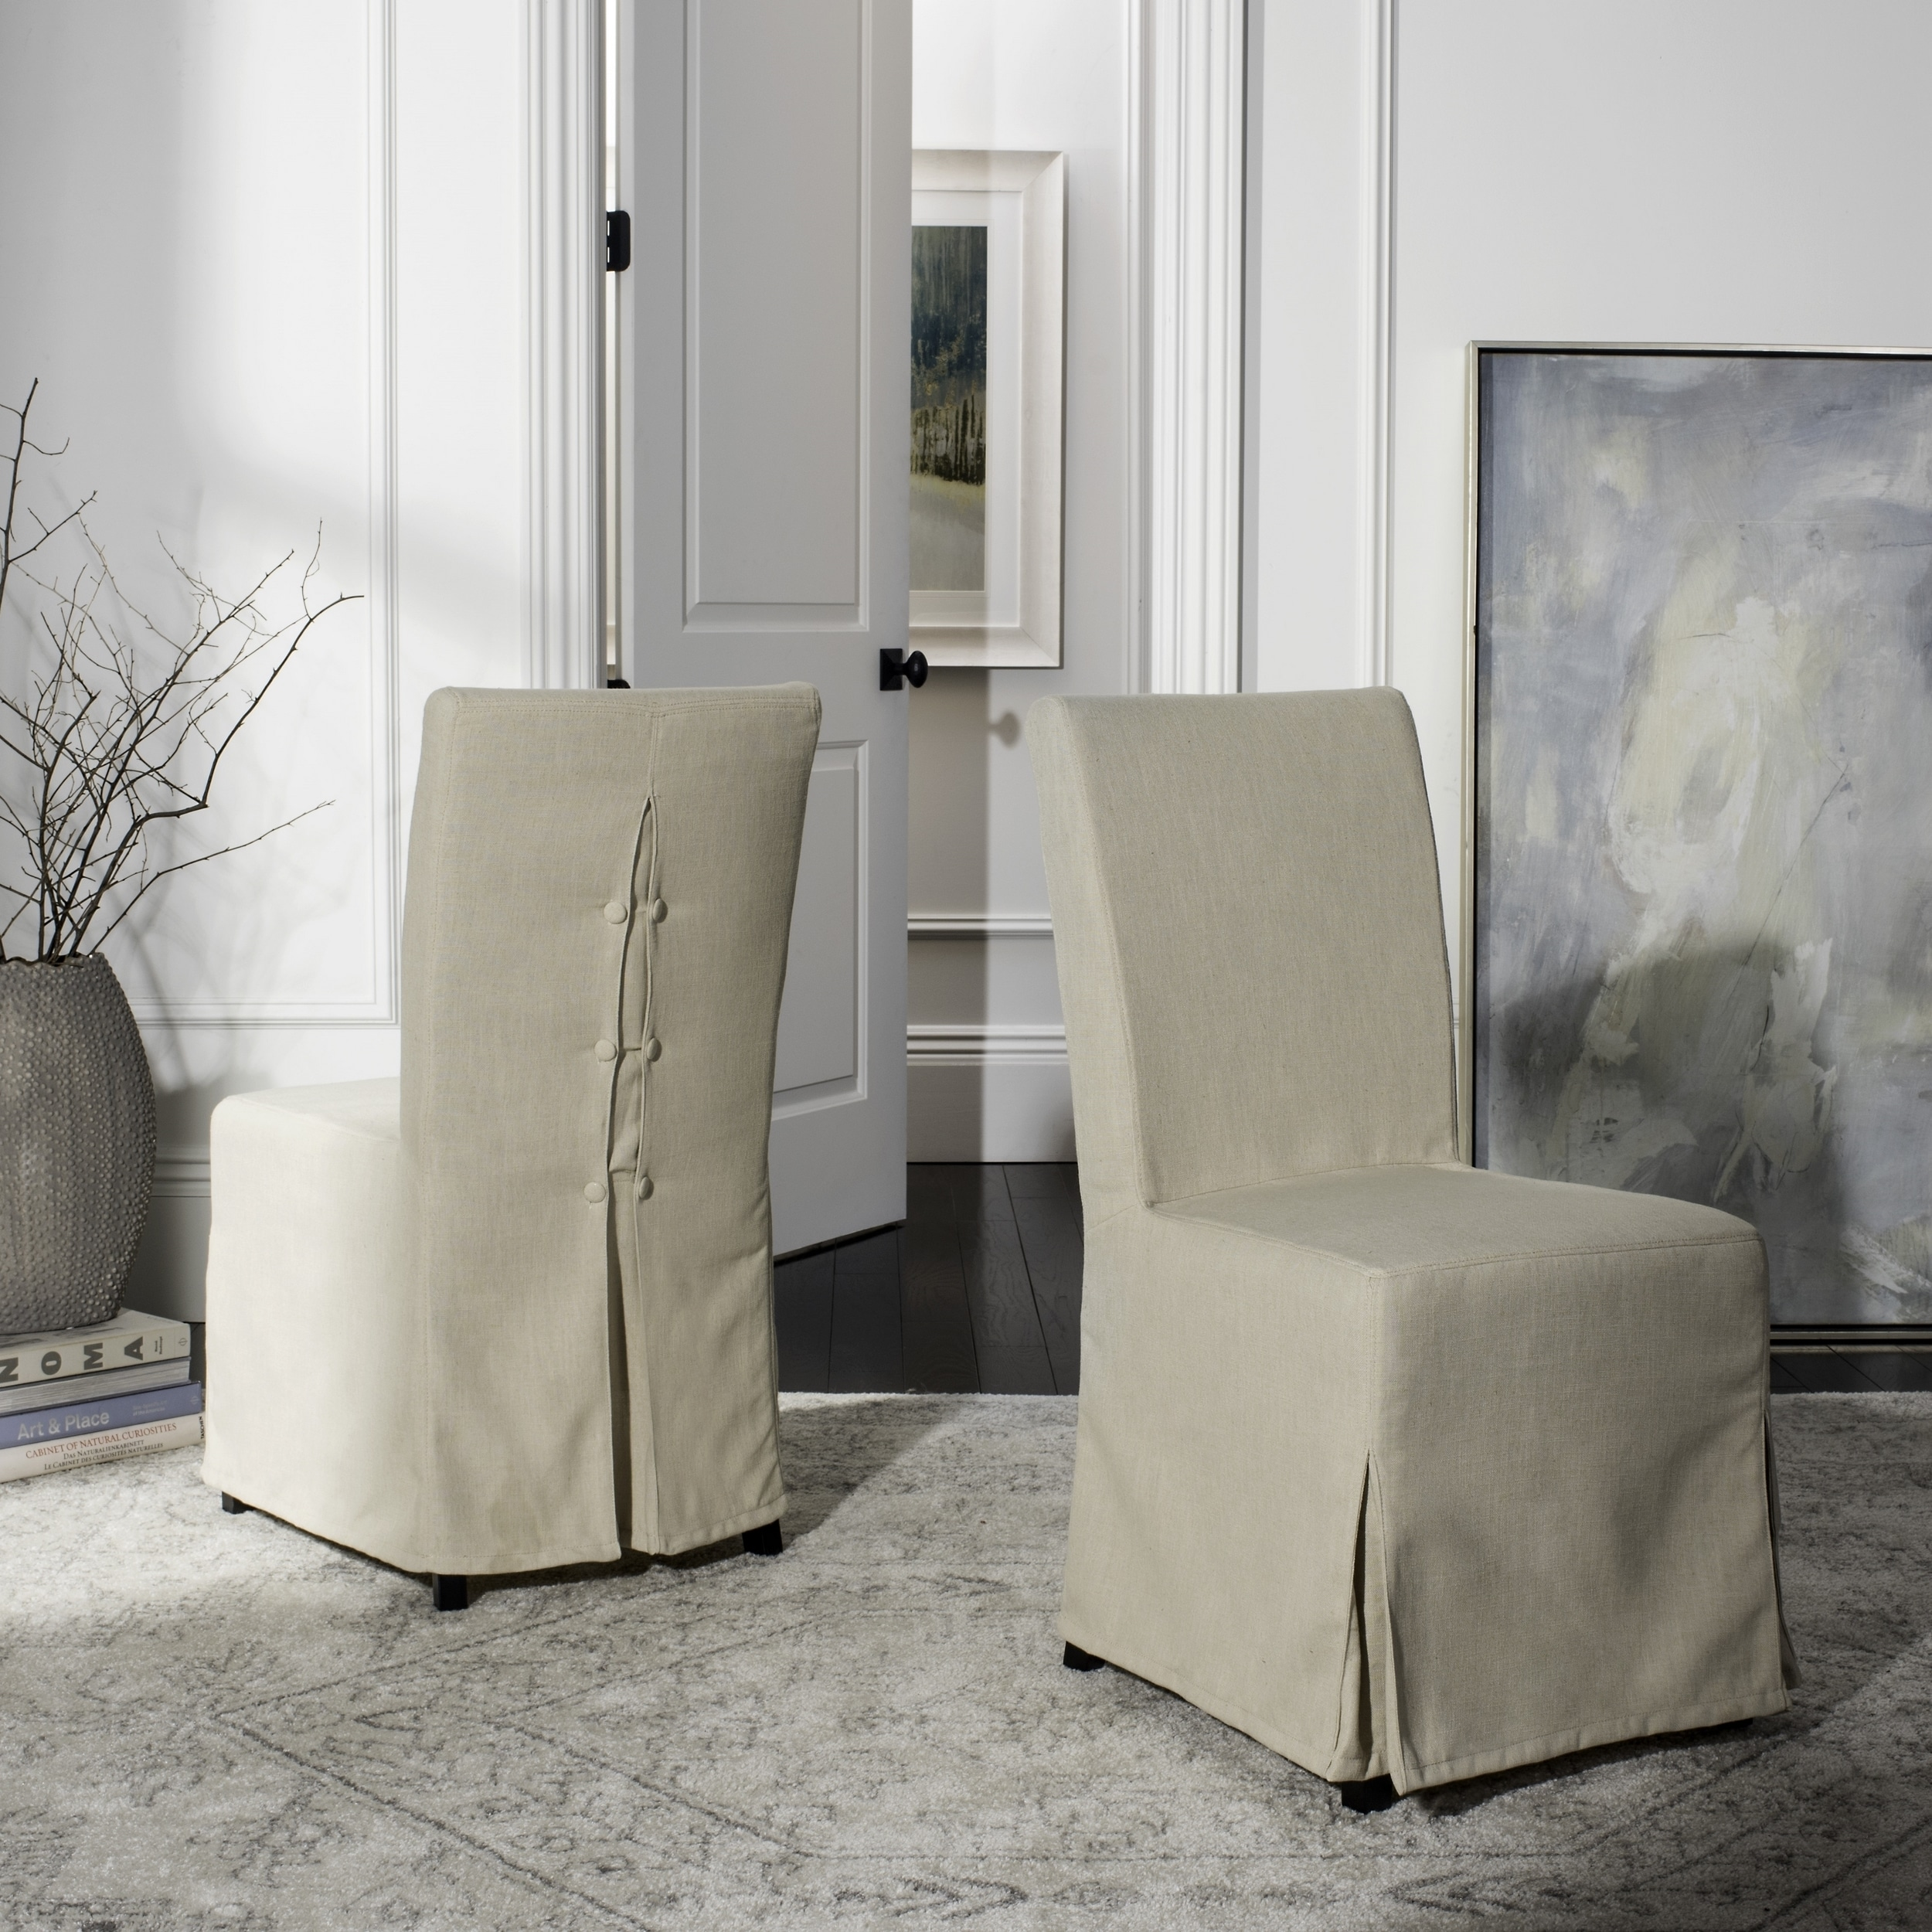 Safavieh Parsons Dining Slipcover Chairs Set Of 2 33 X 19 40 Free Shipping Today 5016637